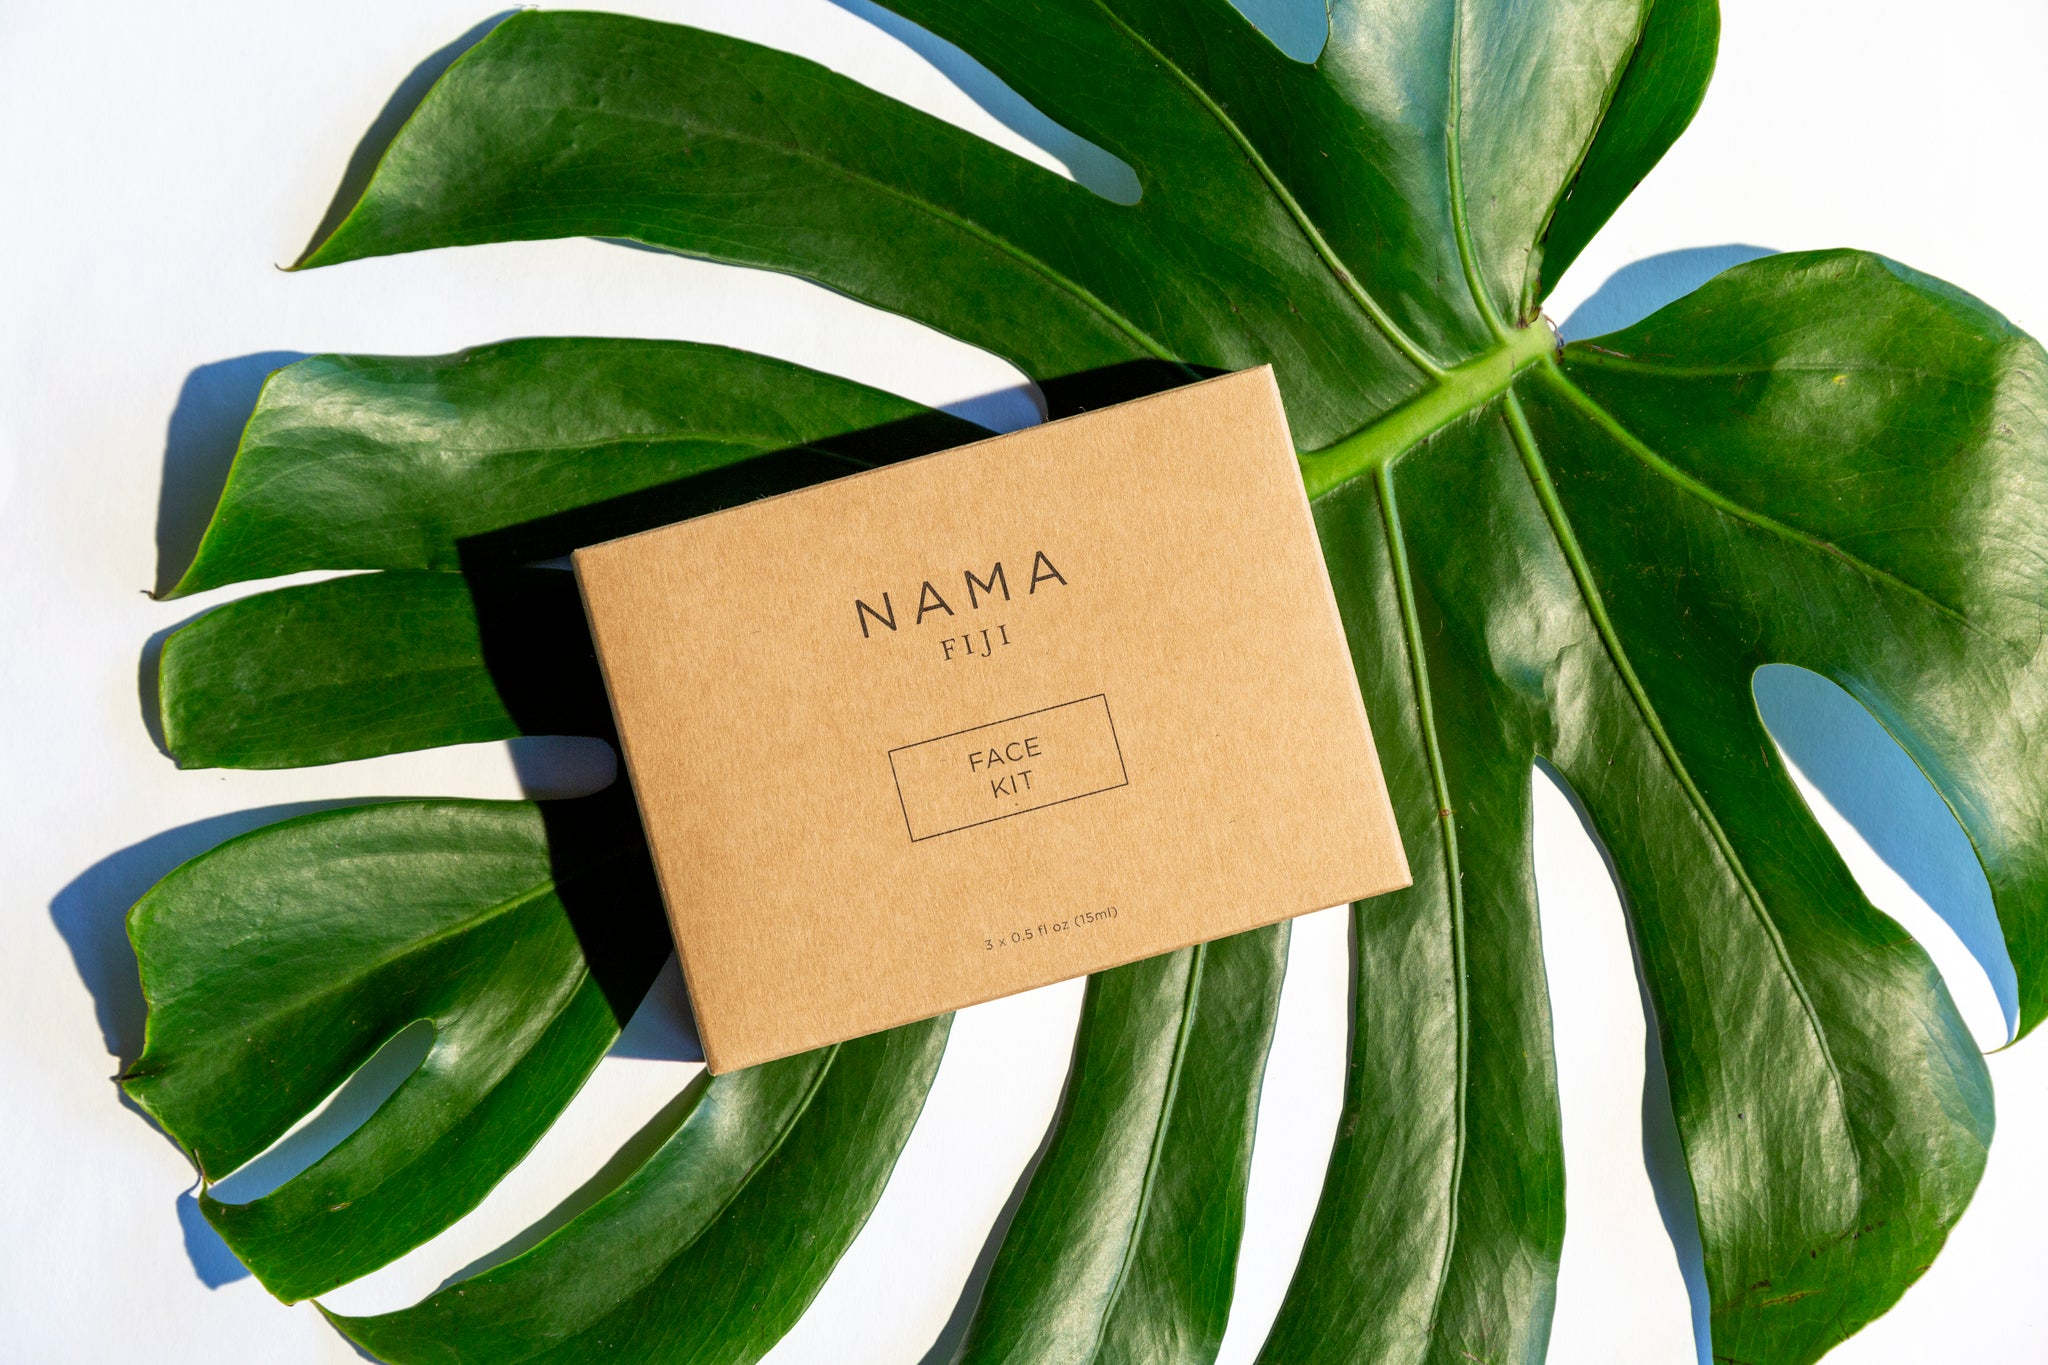 Nama Fiji Face Kit